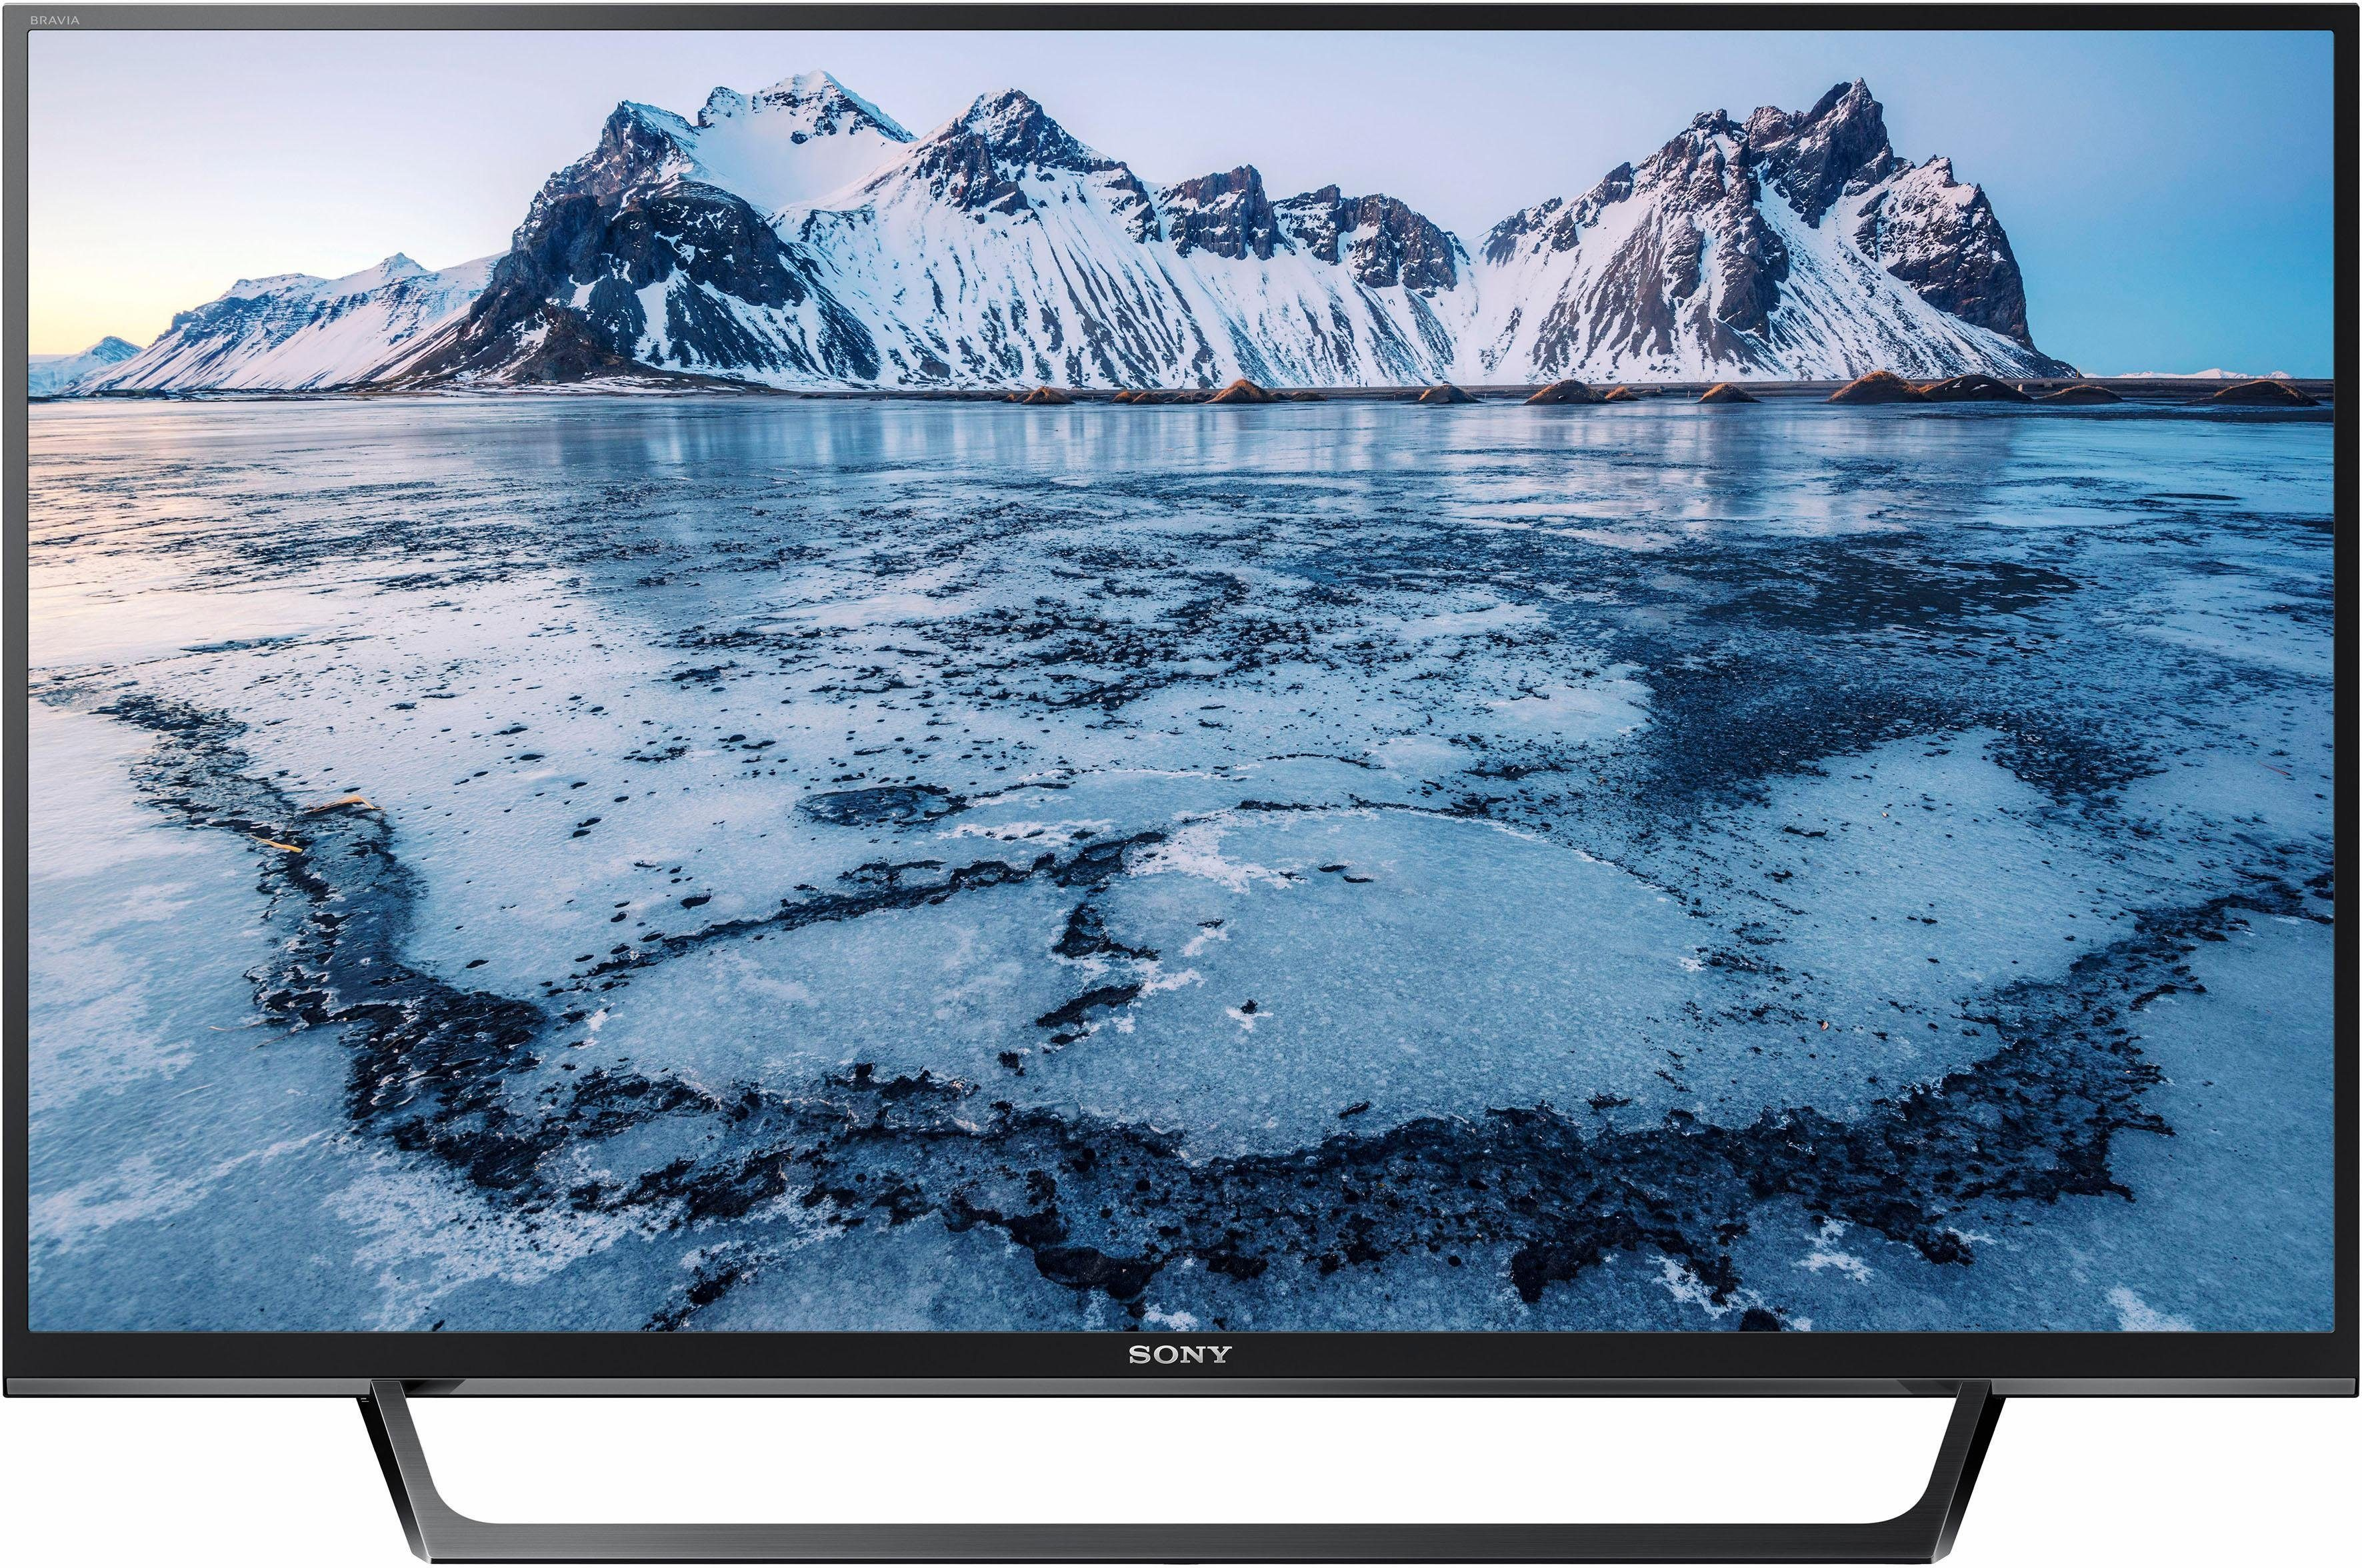 Sony KDL40WE665BAEP LED-Fernseher (101 cm/40 Zoll, Full HD, Smart-TV, Clear Phase; Digital Sound Enhancement Engine; X-Protection PRO)